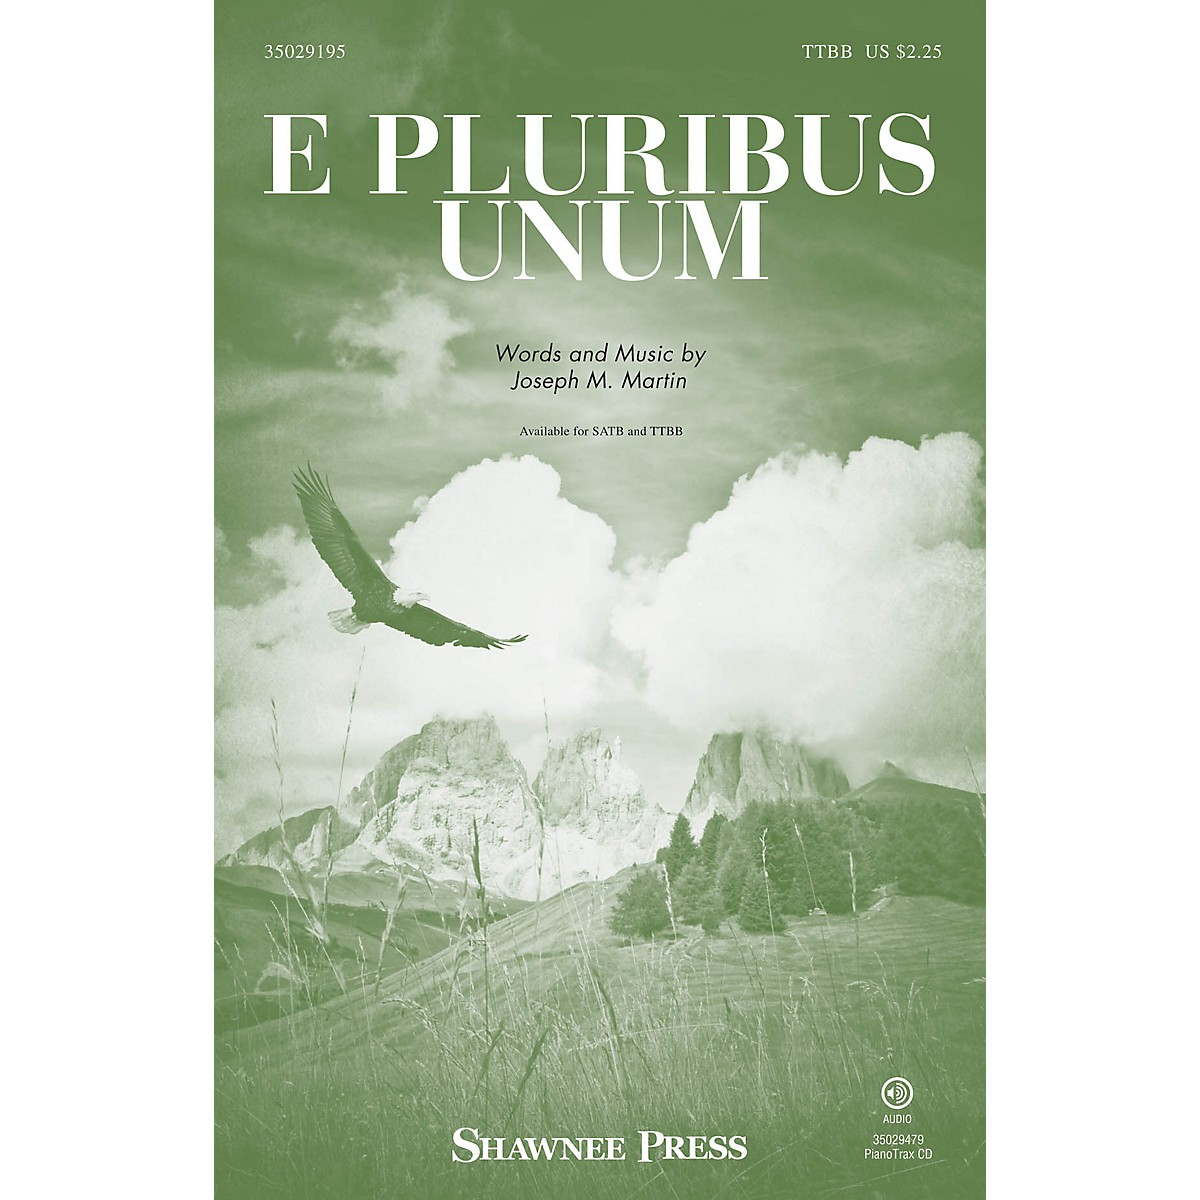 Shawnee Press E Pluribus Unum TTBB composed by Joseph M. Martin